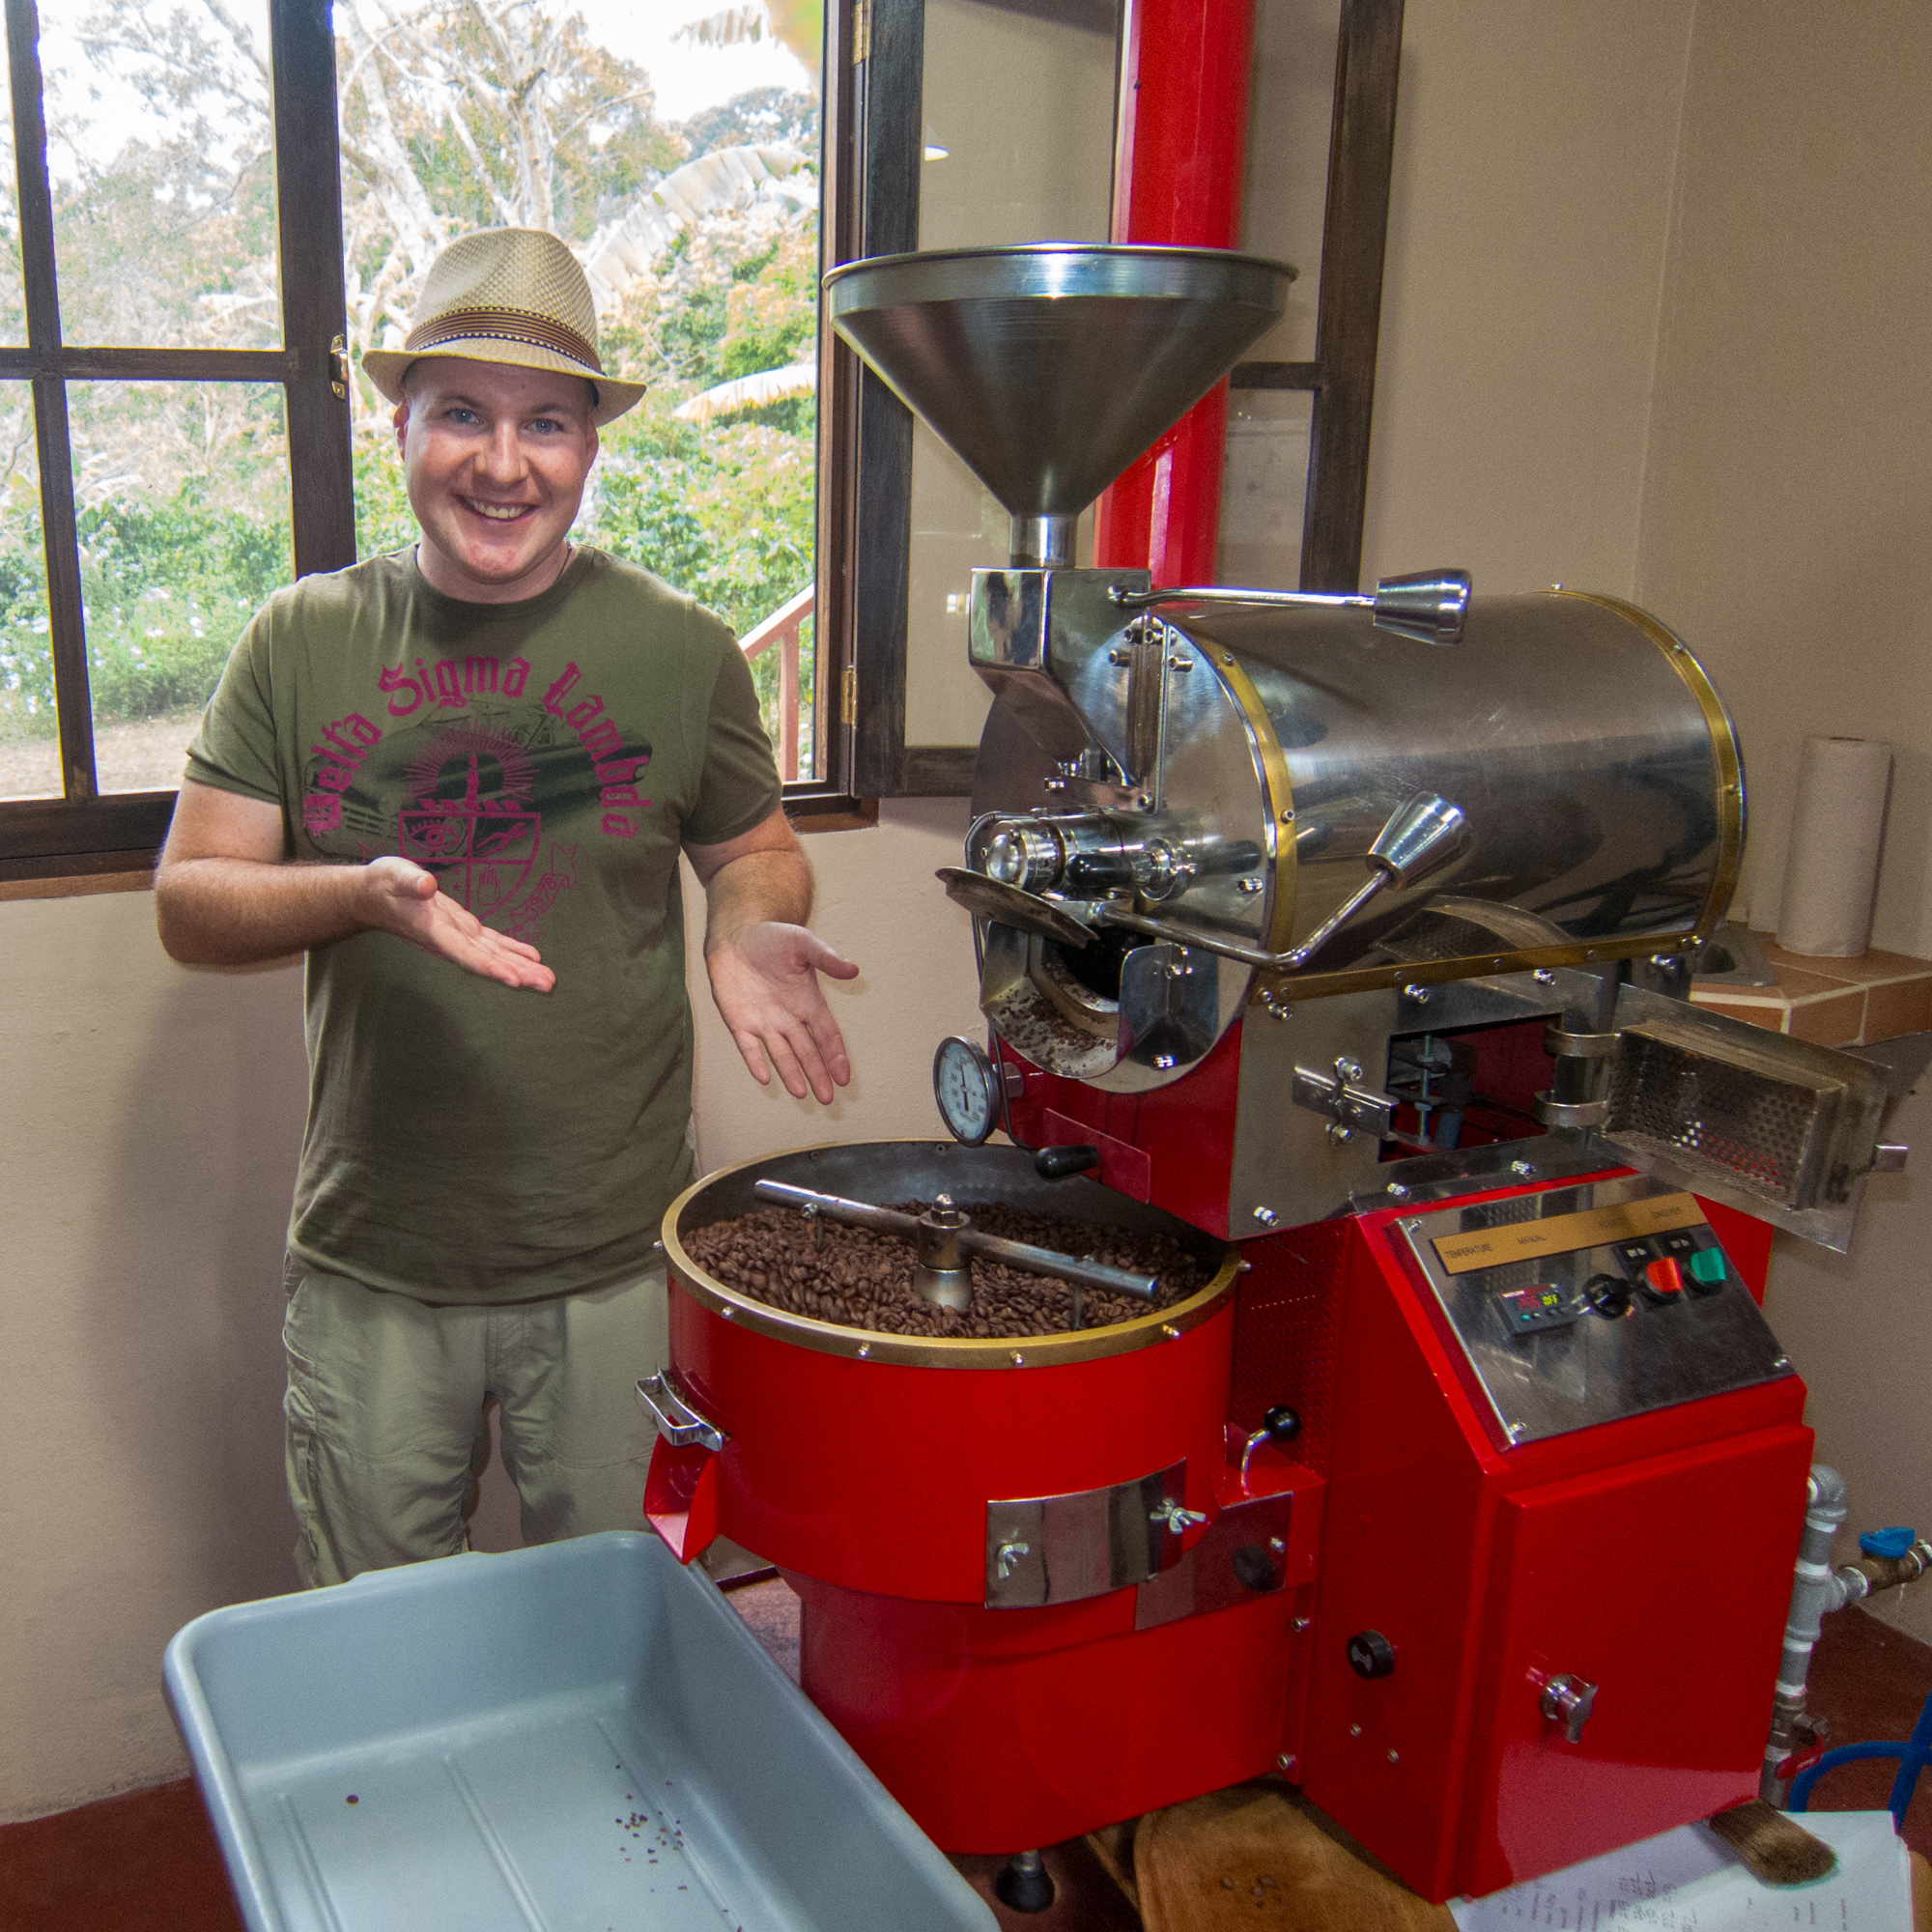 Dave learning about coffee roasting at Finca Dos Jefes